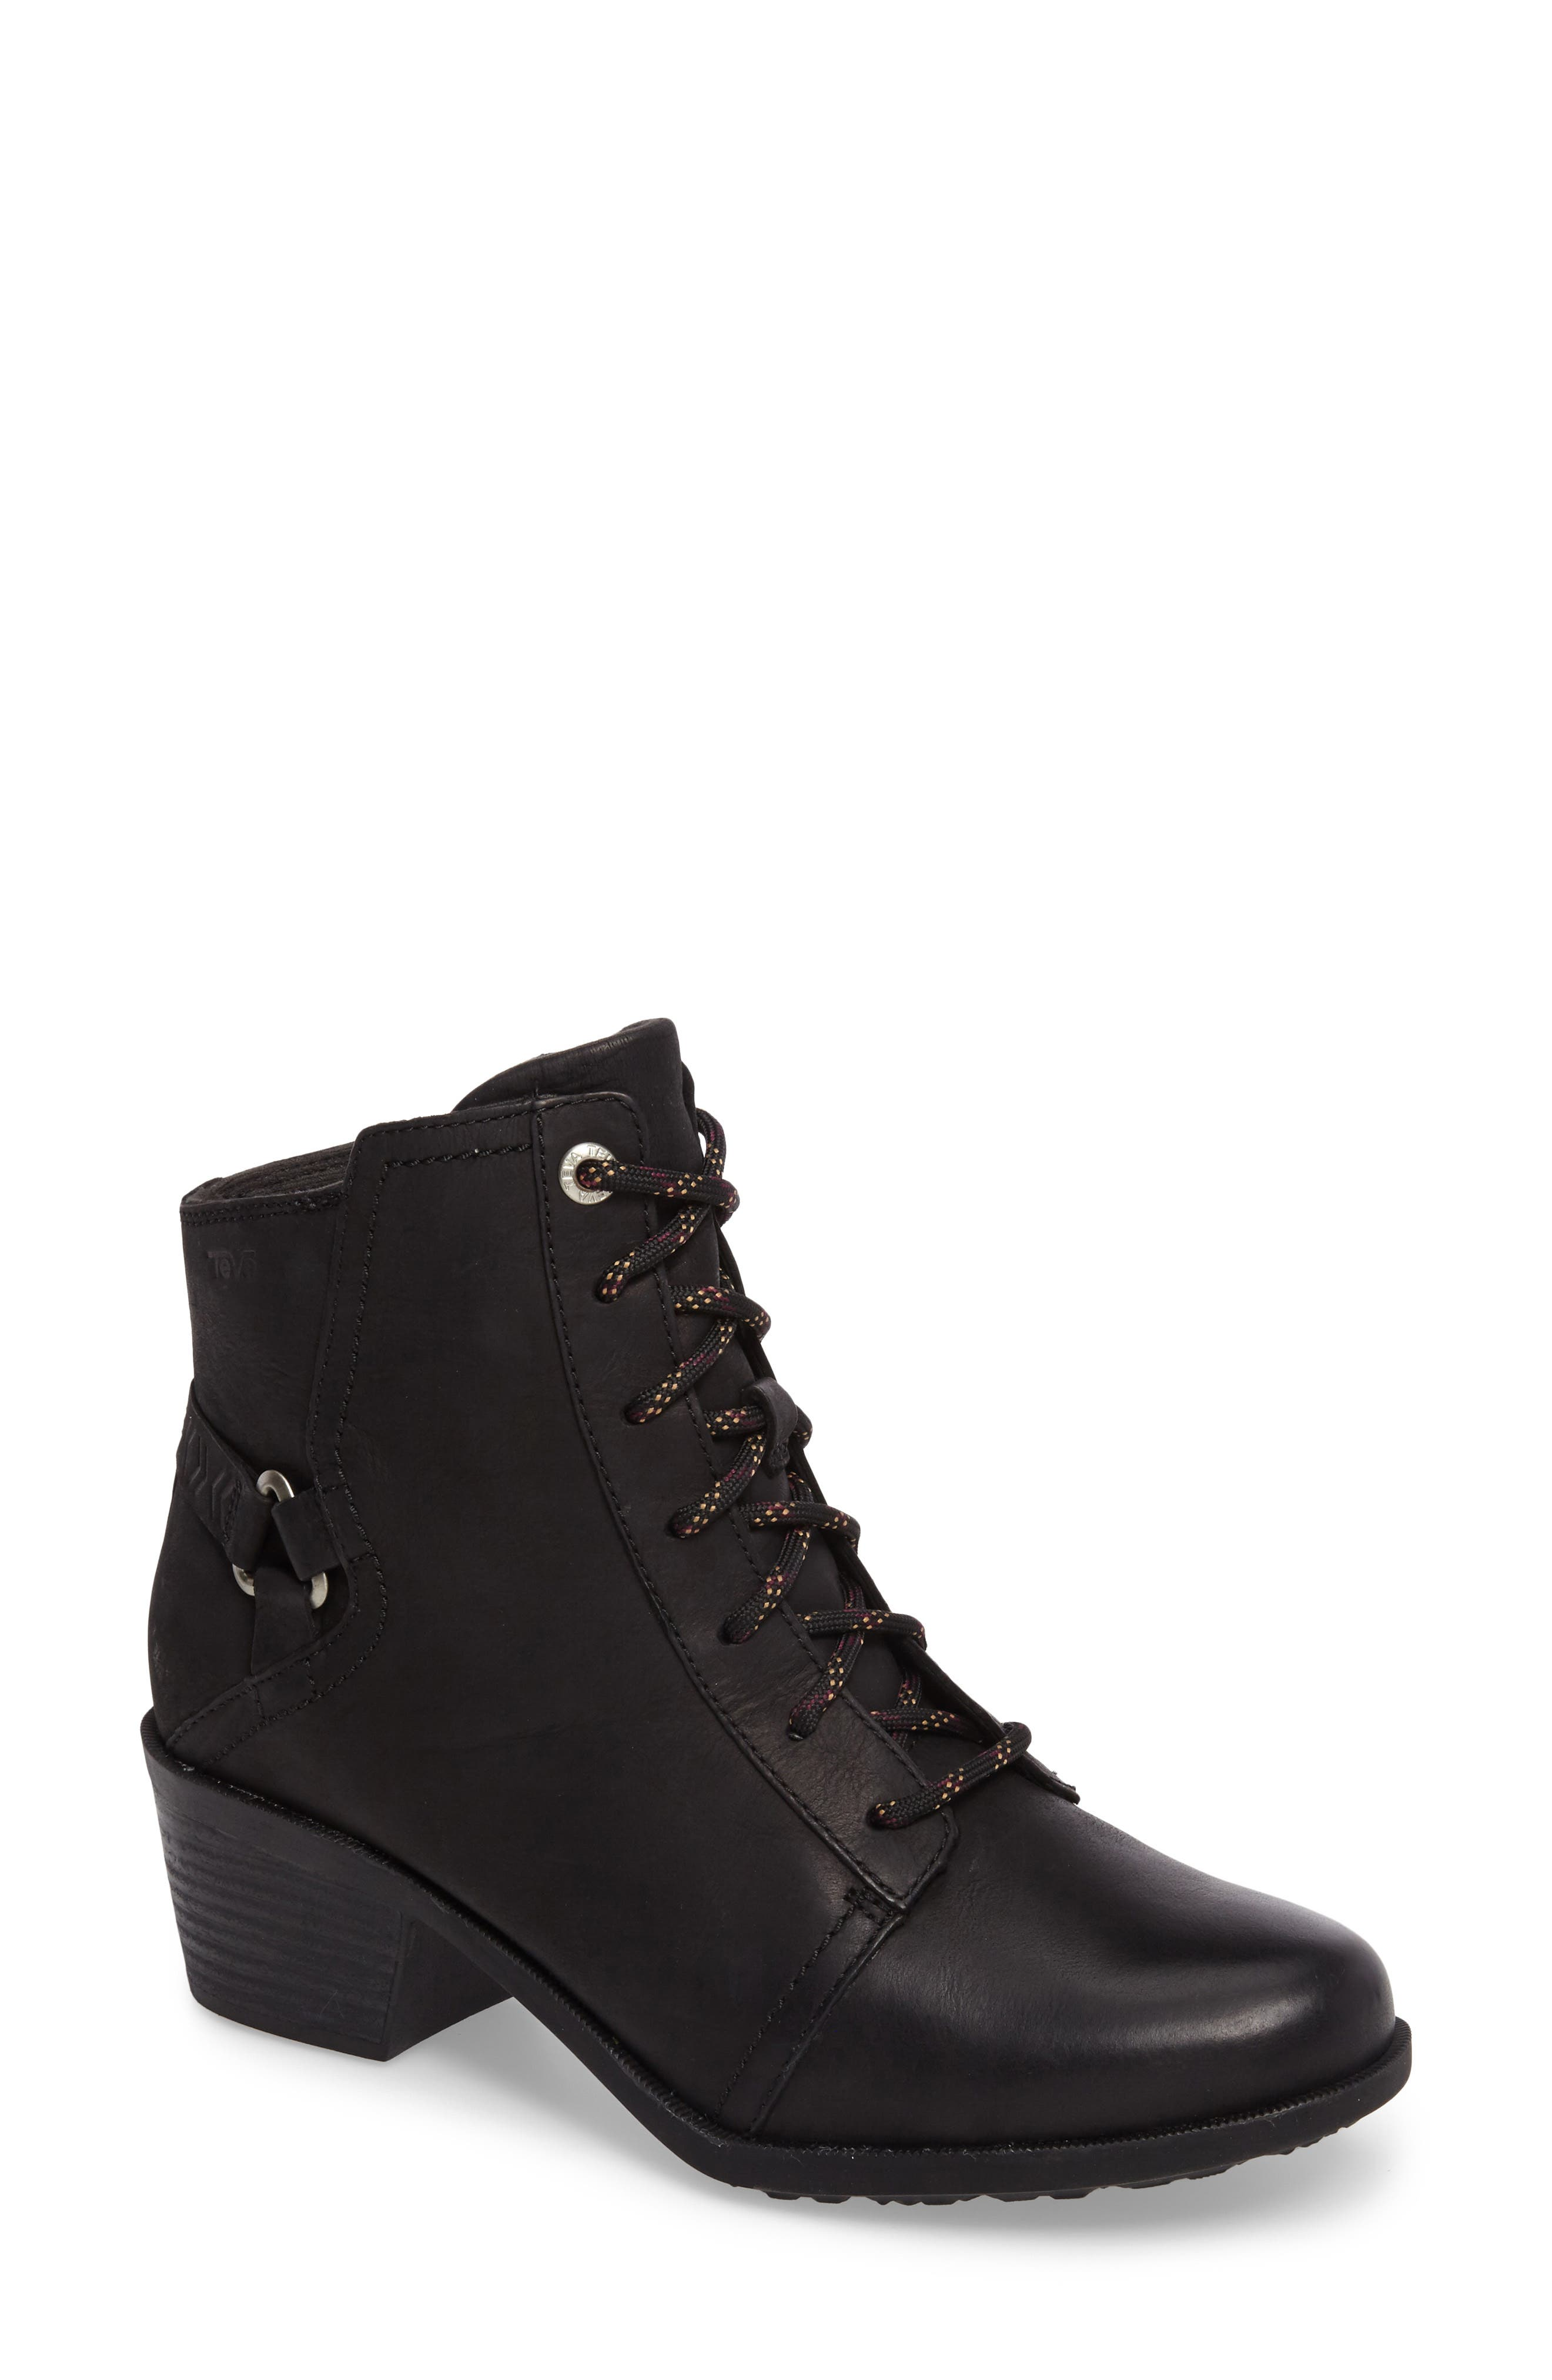 TEVA, Foxy Lace-Up Waterproof Boot, Main thumbnail 1, color, BLACK LEATHER